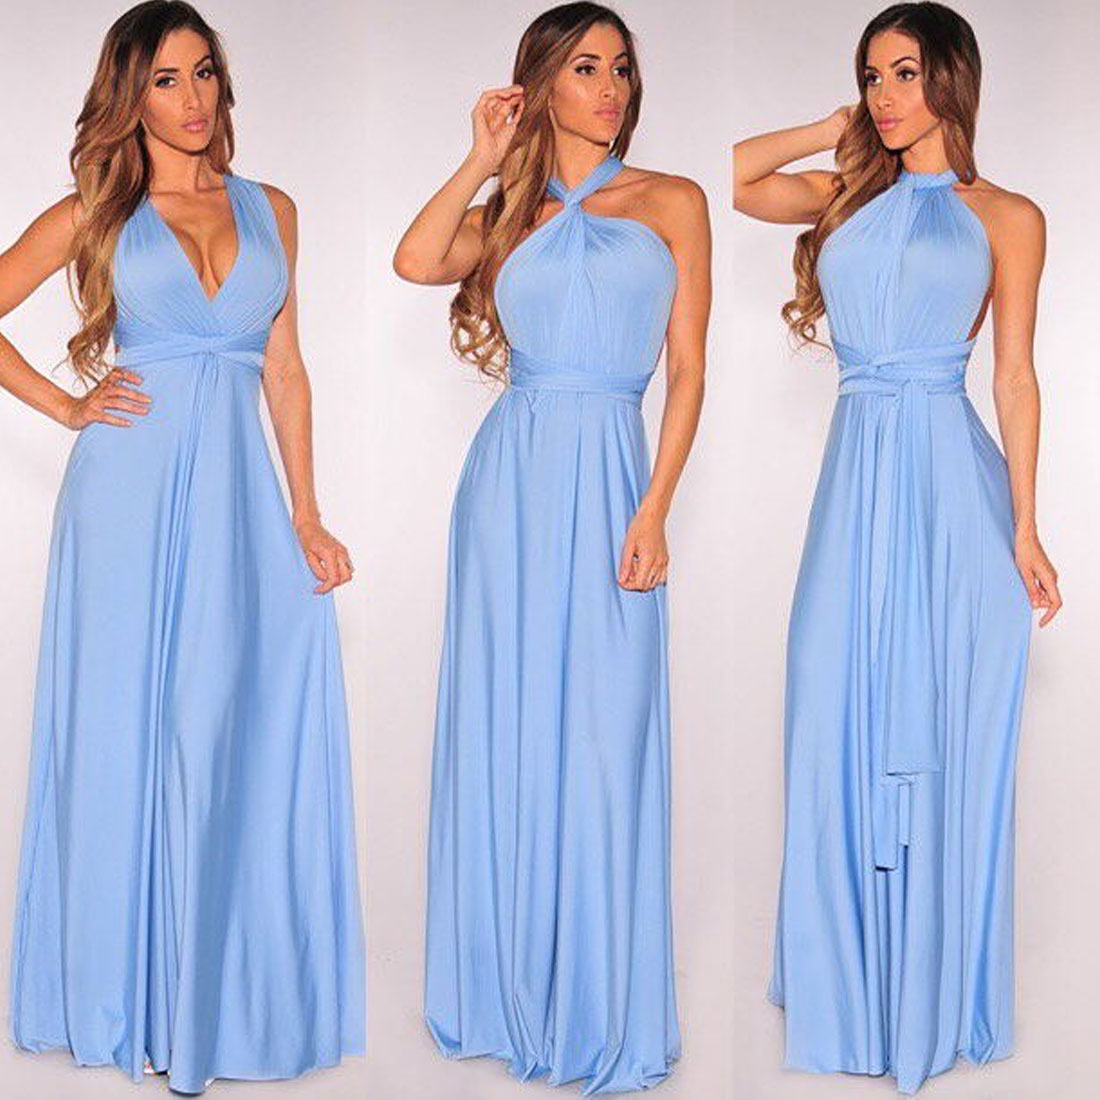 Sexy dress Multiway Wrap Convertible Boho Maxi Club Red Dress Bandage Long Dress Party Bridesmaids Infinity Robe Longue Femme in Dresses from Women 39 s Clothing